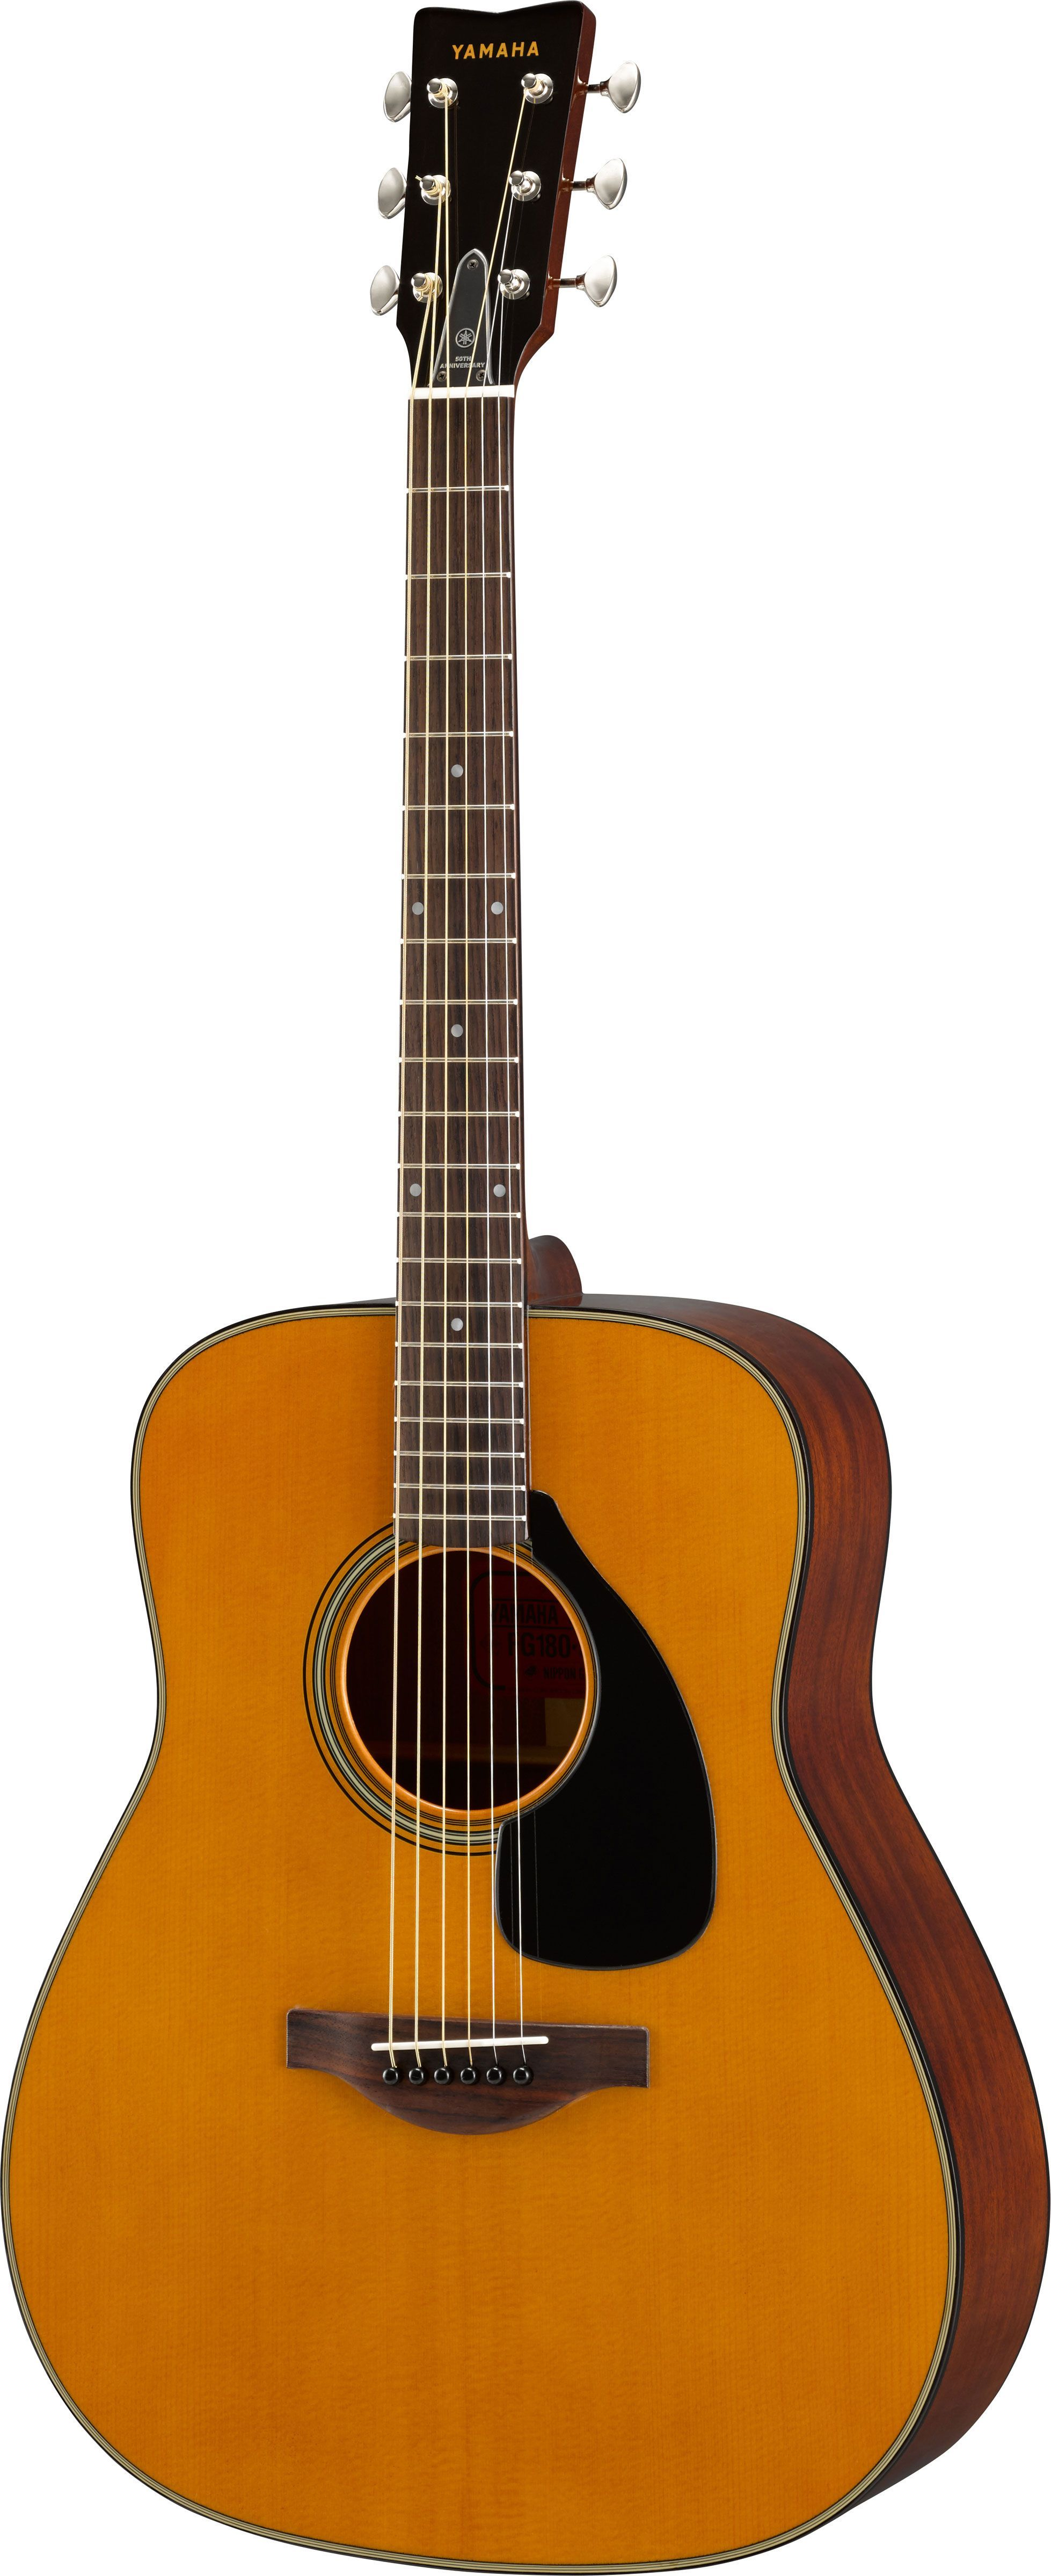 Fg180 50th Yamaha Acoustic Guitar Due To The Strong Response From Fans Even Today Yamaha Used Yamaha Acoustic Guitar Taylor Guitars Acoustic Yamaha Acoustic